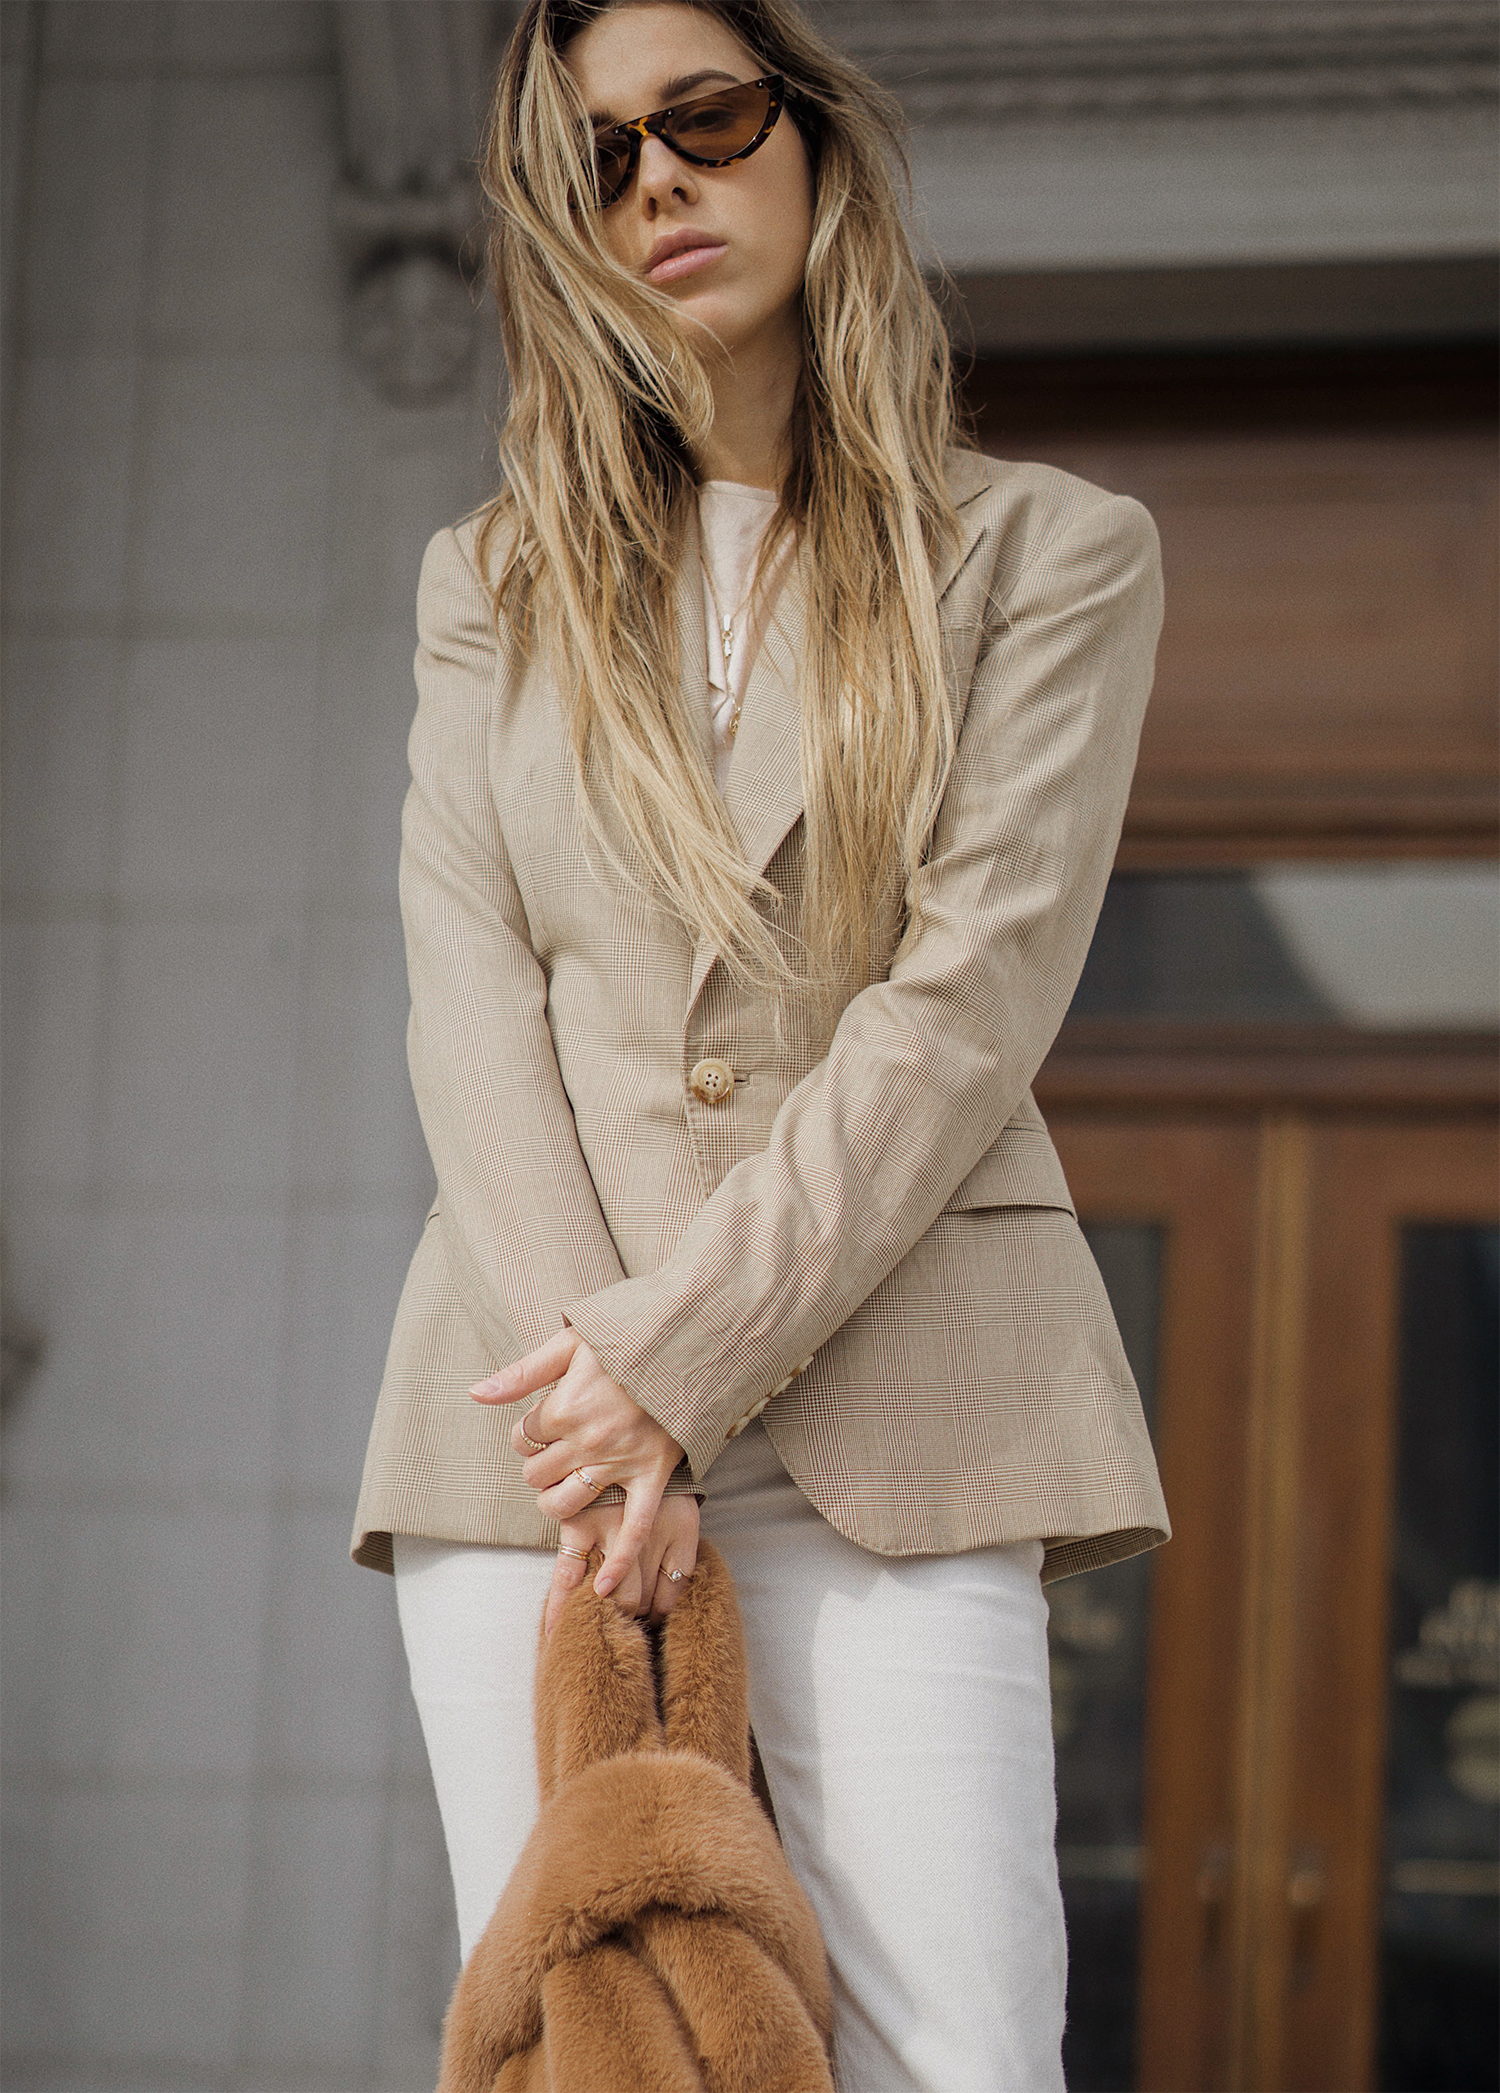 ralph_lauren_neutral_layers_outfit_fur_bag_vince_zara_trench_coat_street_style_lenajuice_thewhiteocean_05